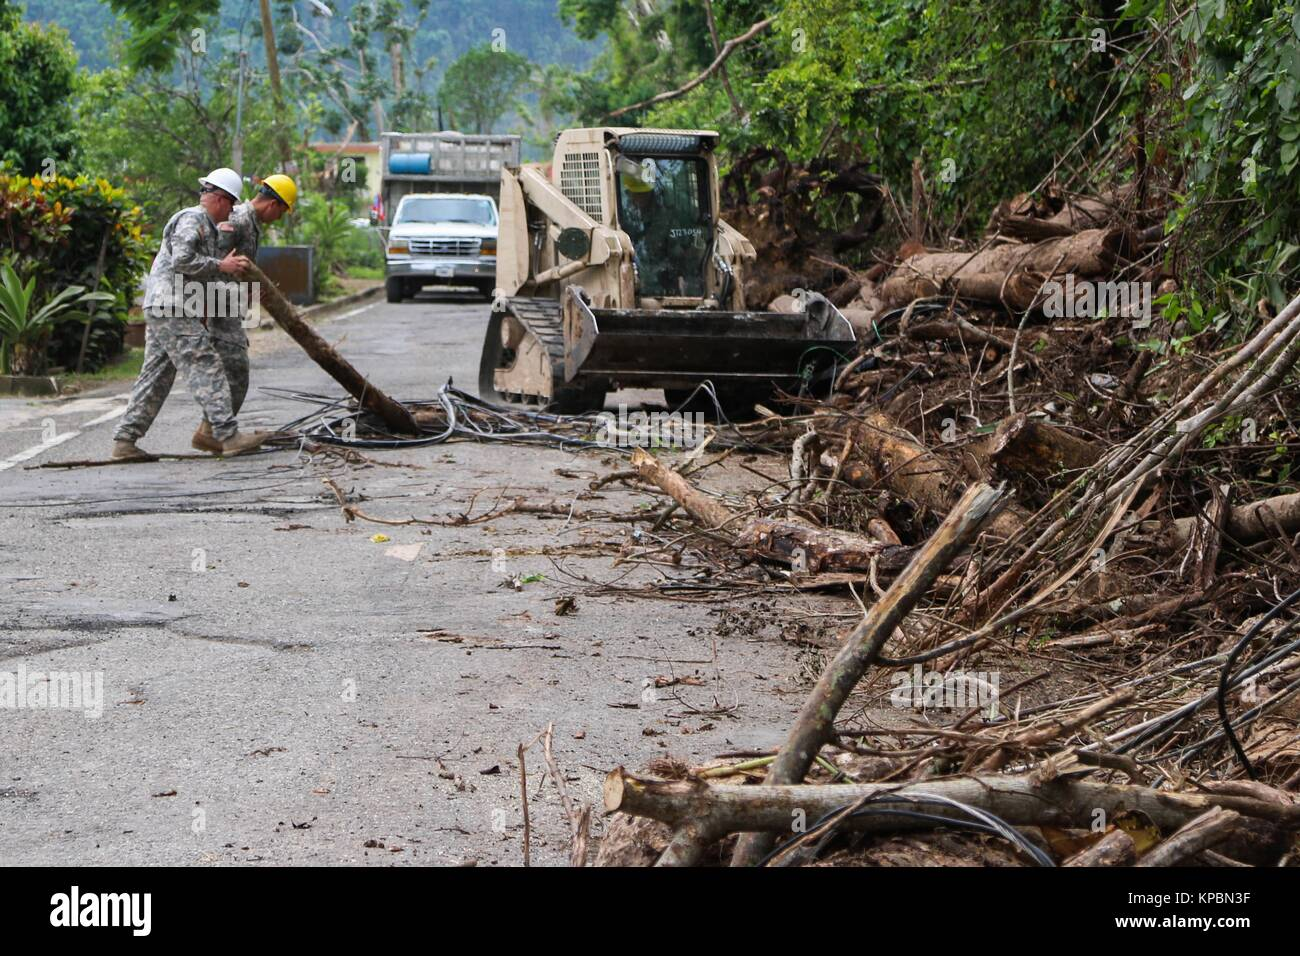 U.S. National Guard soldiers clear debris from Road 123 during relief efforts in the aftermath of Hurricane Maria - Stock Image